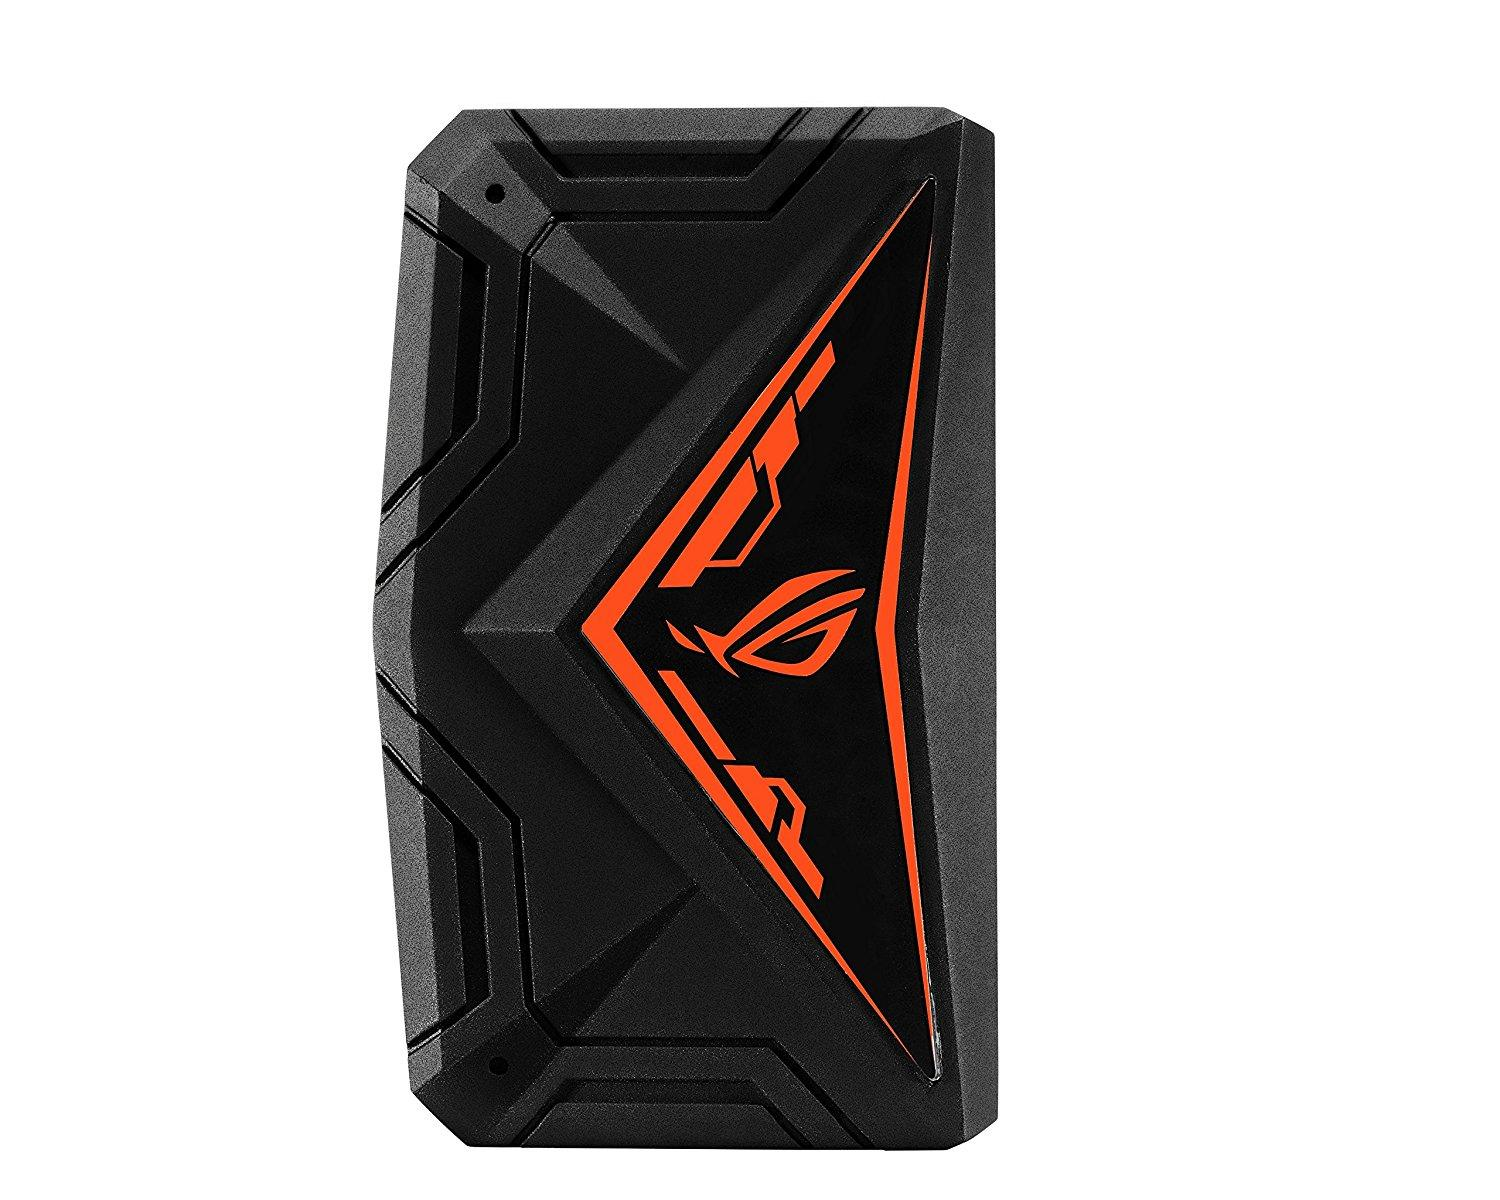 ASUS ROG SLI Bridge (2-Way) 3 Slot